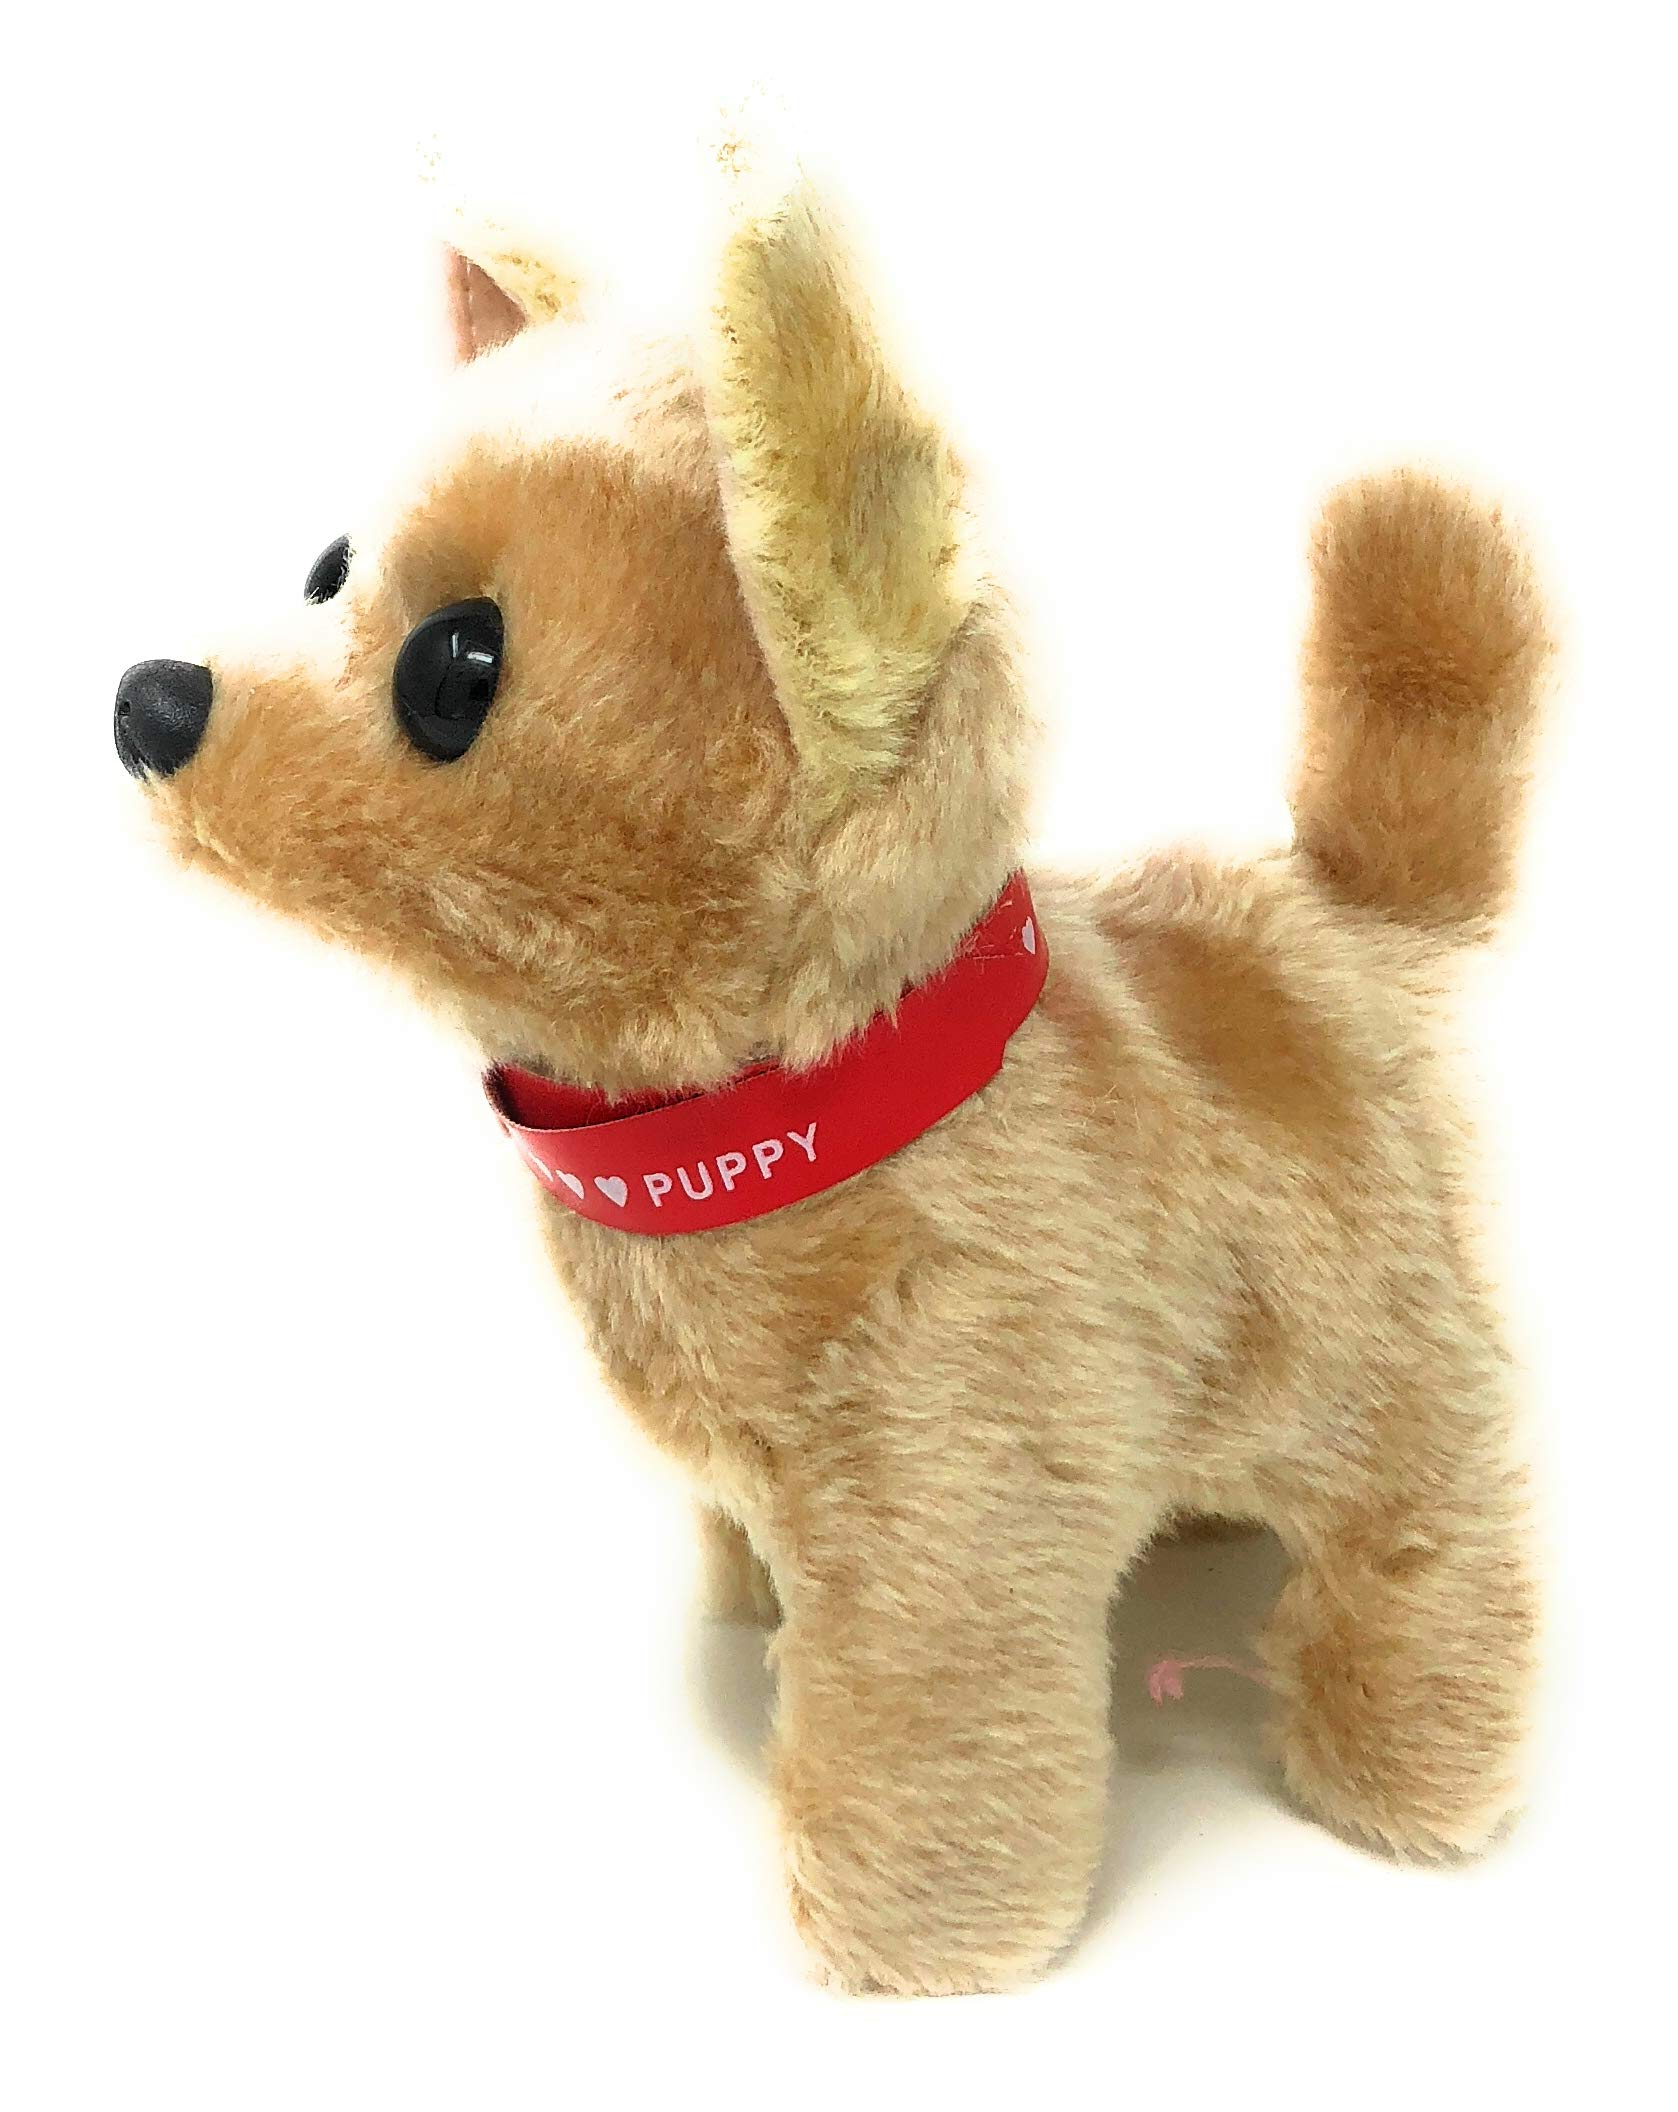 Walking Toy Puppy | Battery Operated Walking, Tail-Wagging and Mechanical Barking Electronic PIush Animal Dog by JoyABit (Image #2)